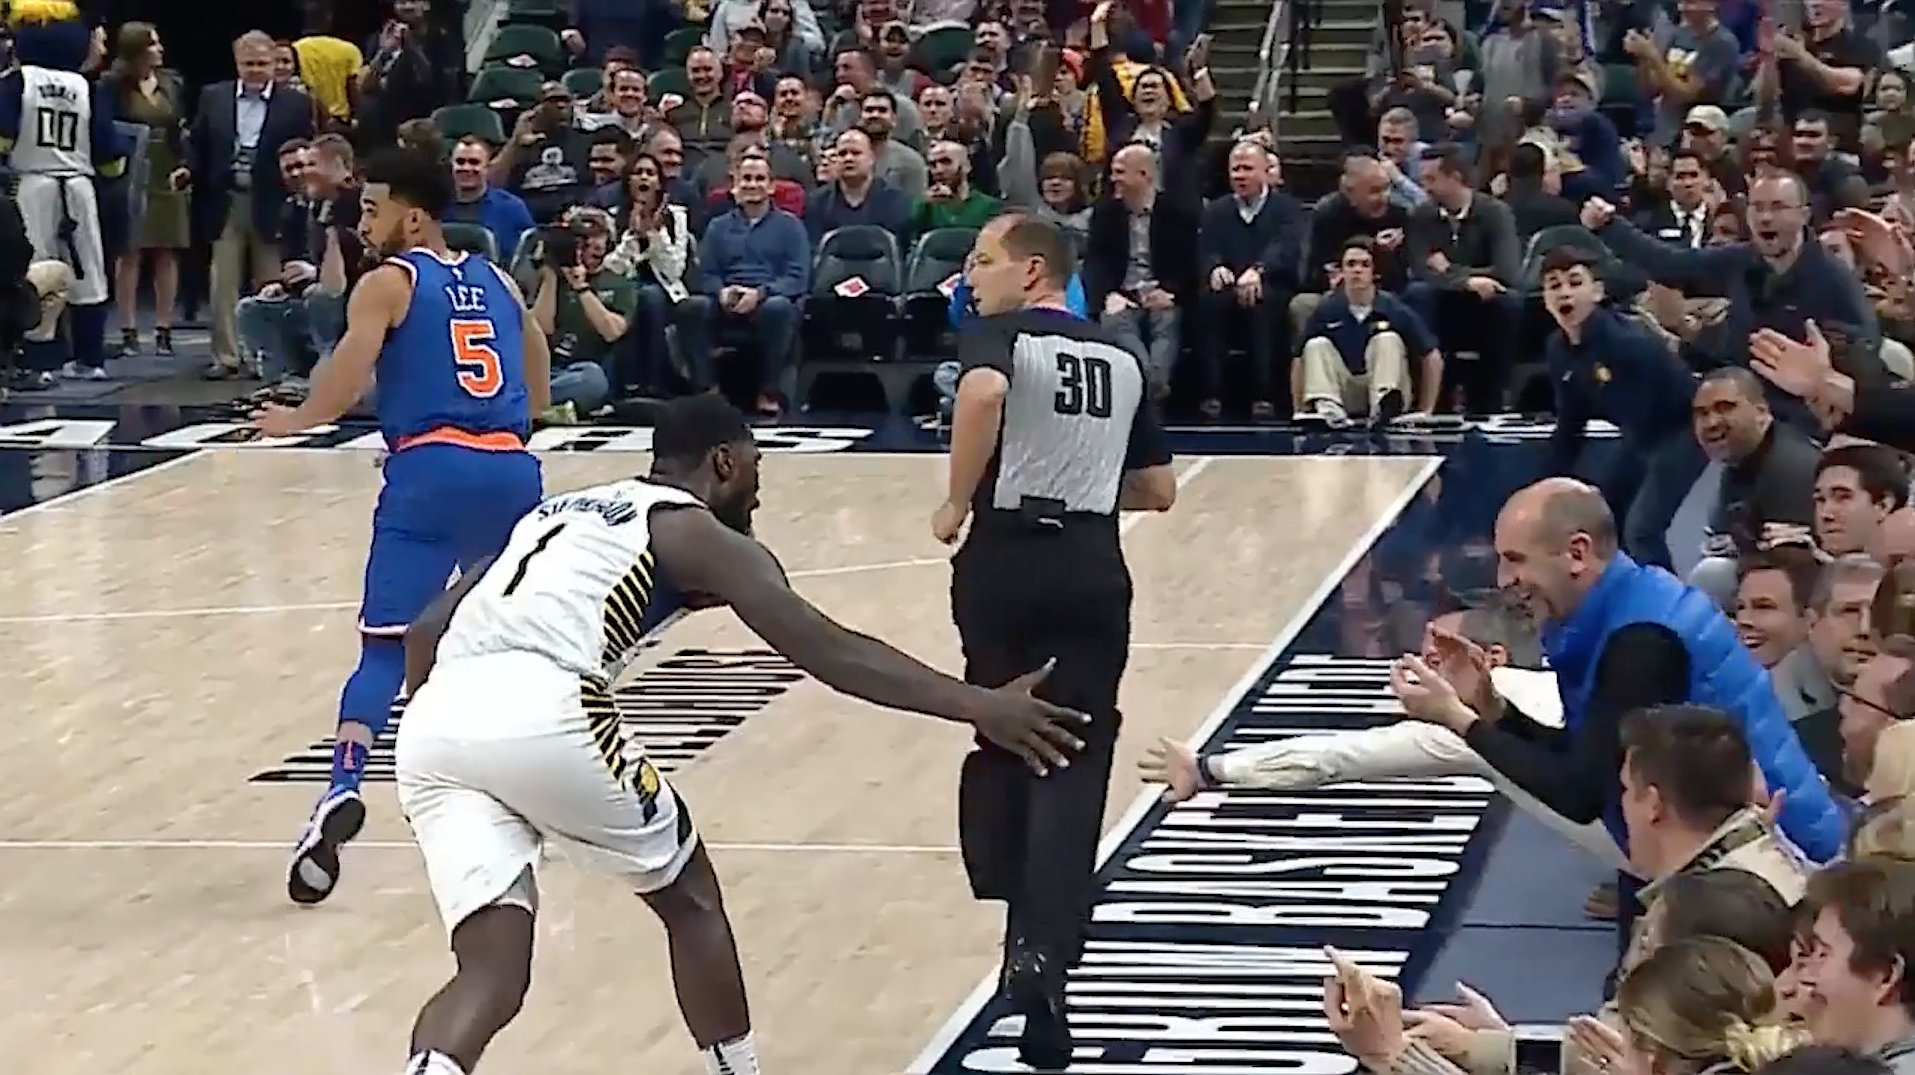 The biggest plays from @StephensonLance's 2017-18 season: https://t.co/1A31qDg7Ue